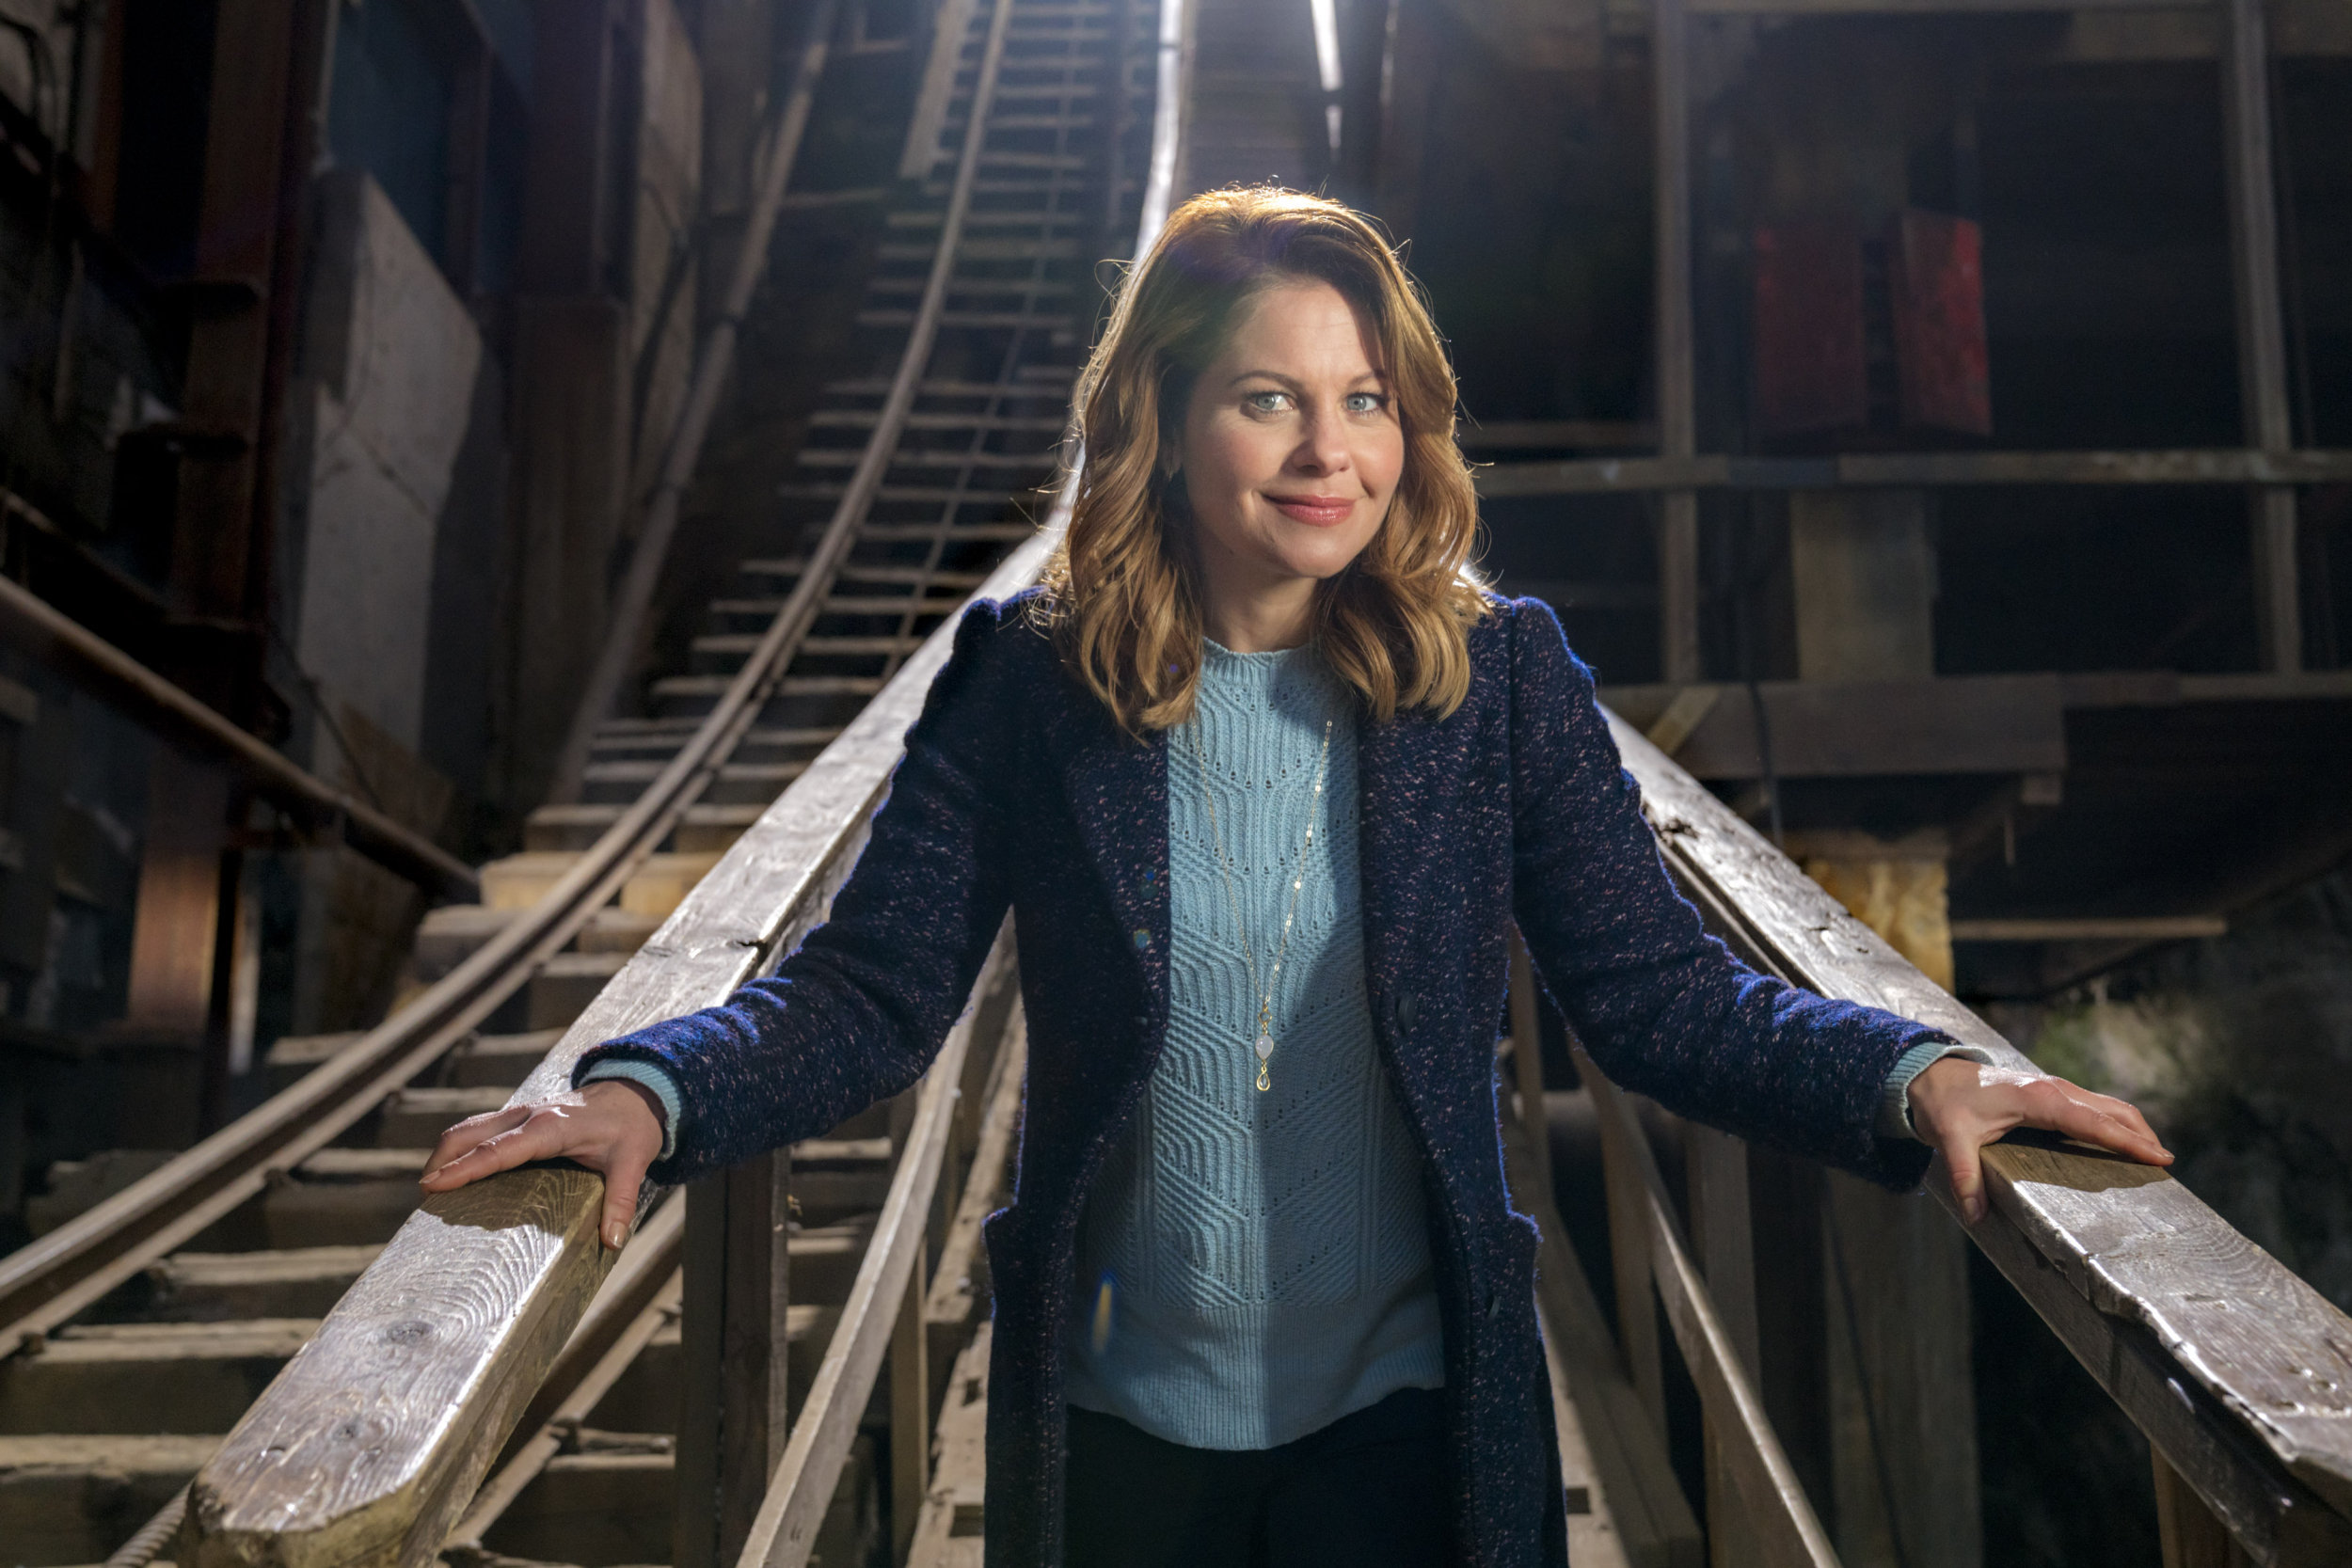 Candace Cameron Bure Aurora Teagarden Mysteries The Disappearing Game Hallmark Movies And